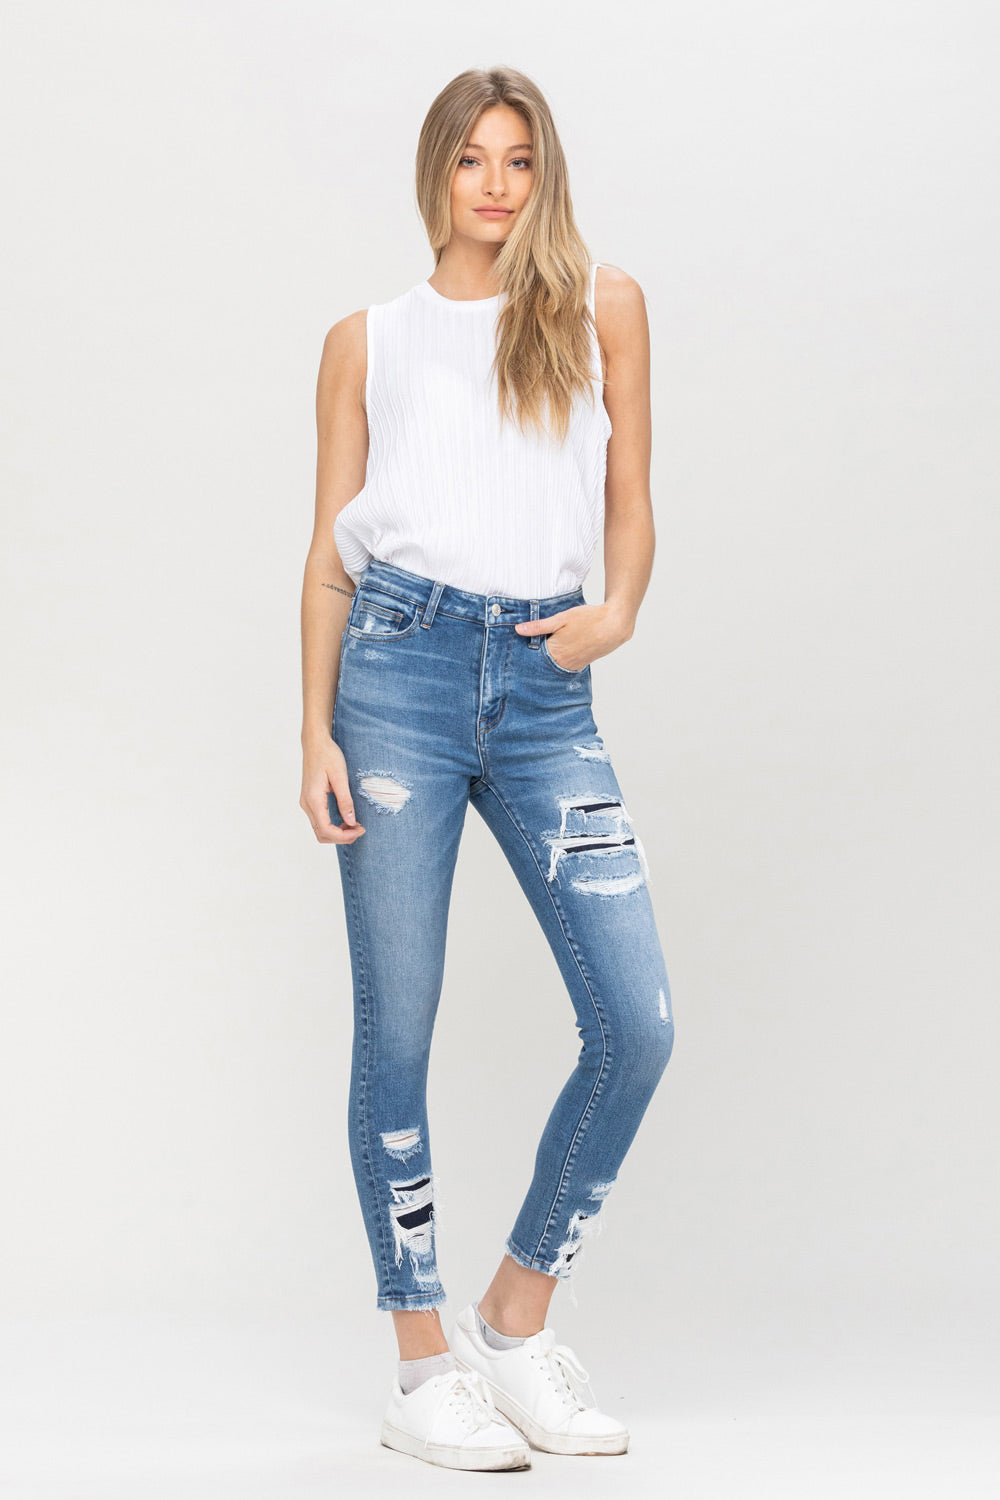 The Samantha Crop Skinny Jeans